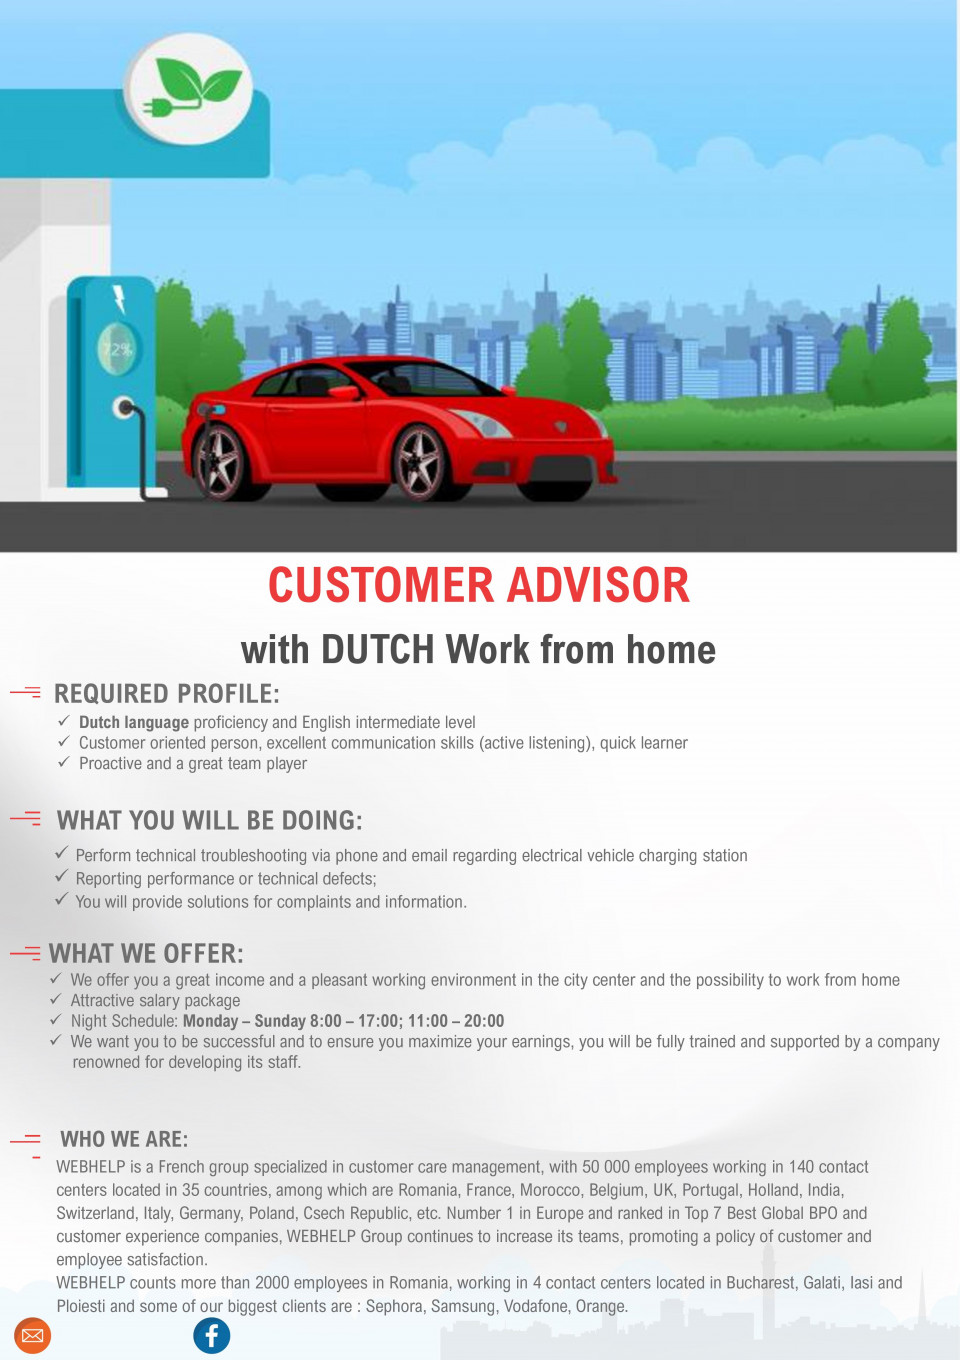 CUSTOMER ADVISOR with Dutch Work from home consilier clienti, customer support, call-center, serviciu client, vanzari, agent vanzari, dutch, neerlandeza, olandeza REQUIRED PROFILE: ✓ Dutch language proficiency and English intermediate level ✓ Customer oriented person, excellent communication skills (active listening), quick learner ✓ Proactive and a great team player WHAT YOU WILL BE DOING: ✓ Perform technical troubleshooting via phone and email regarding electrical vehicle charging station ✓ Reporting performance or technical defects; ✓ You will provide solutions for complaints and information. WHO WE ARE: WEBHELP is a French group specialized in customer care management, with 50 000 employees working in 140 contact centers located in 35 countries, among which are Romania, France, Morocco, Belgium, UK, Portugal, Holland, India, Switzerland, Italy, Germany, Poland, Csech Republic, etc. Number 1 in Europe and ranked in Top 7 Best Global BPO and customer experience companies, WEBHELP Group continues to increase its teams, promoting a policy of customer and employee satisfaction. WEBHELP counts more than 2000 employees in Romania, working in 4 contact centers located in Bucharest, Galati, Iasi and Ploiesti and some of our biggest clients are : Sephora, Samsung, Vodafone, Orange. WHAT WE OFFER: ✓ We offer you a great income and a pleasant working environment in the city center and the possibility to work from home ✓ Attractive salary package ✓ Night Schedule: Monday – Sunday 8:00 – 17:00; 11:00 – 20:00 ✓ First day at work: 23 September 2019 ✓ We want you to be successful and to ensure you maximize your earnings, you will be fully trained and supported by a company renowned for developing its staff.